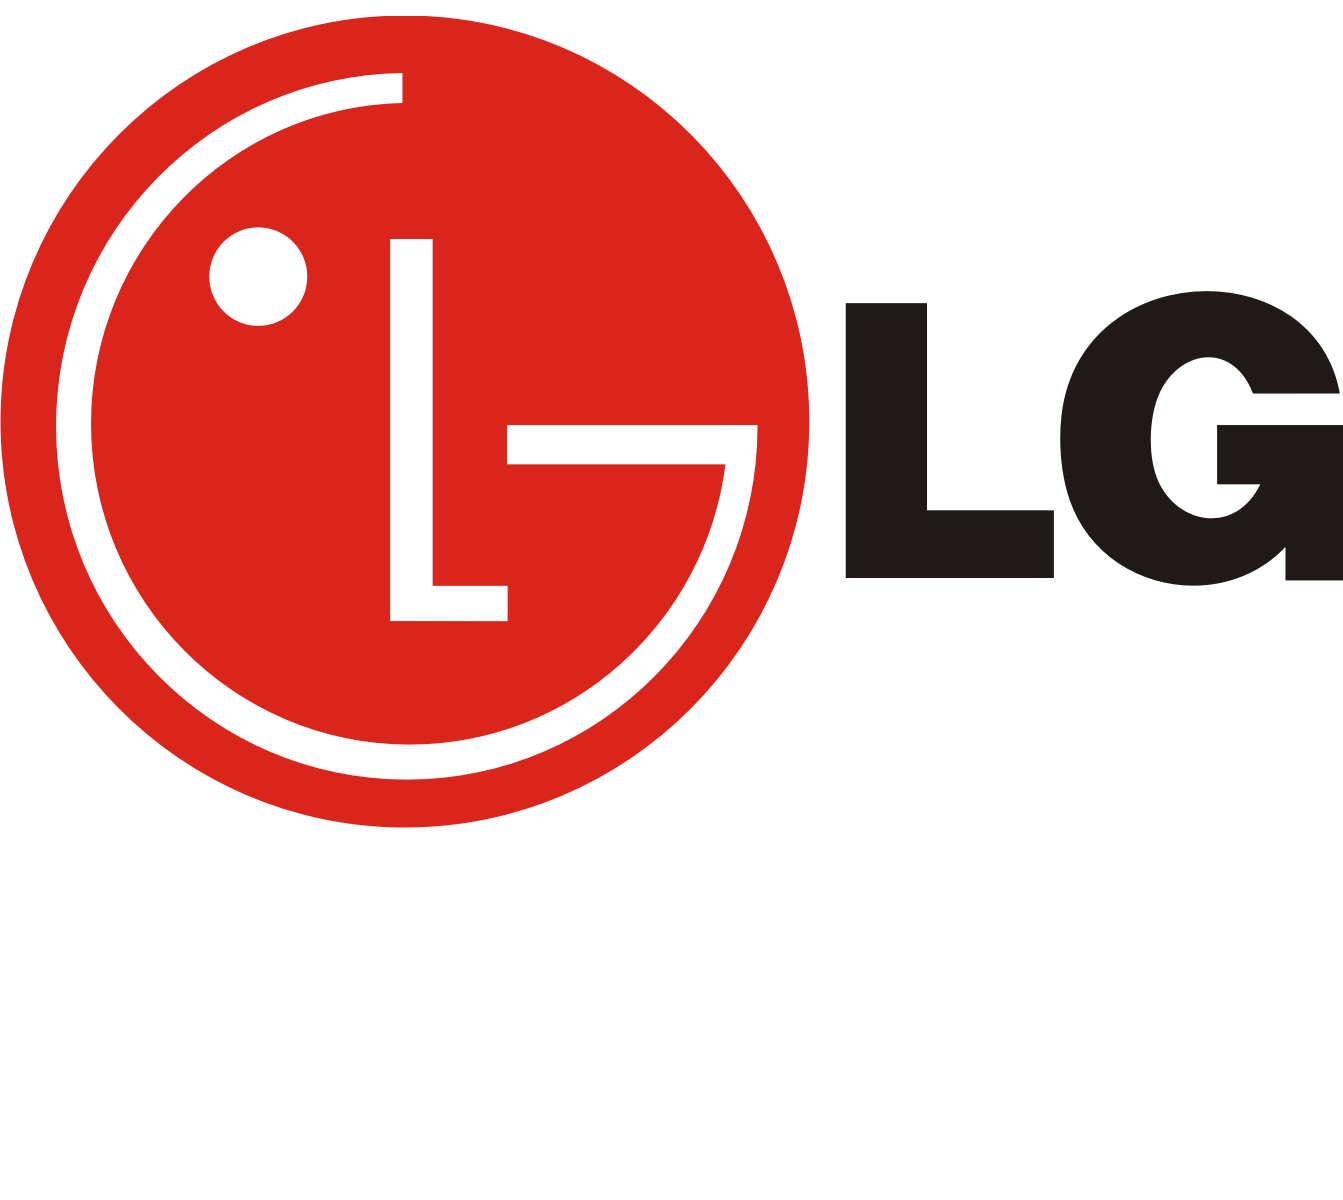 lg logo, canada express smartphone fight #14458